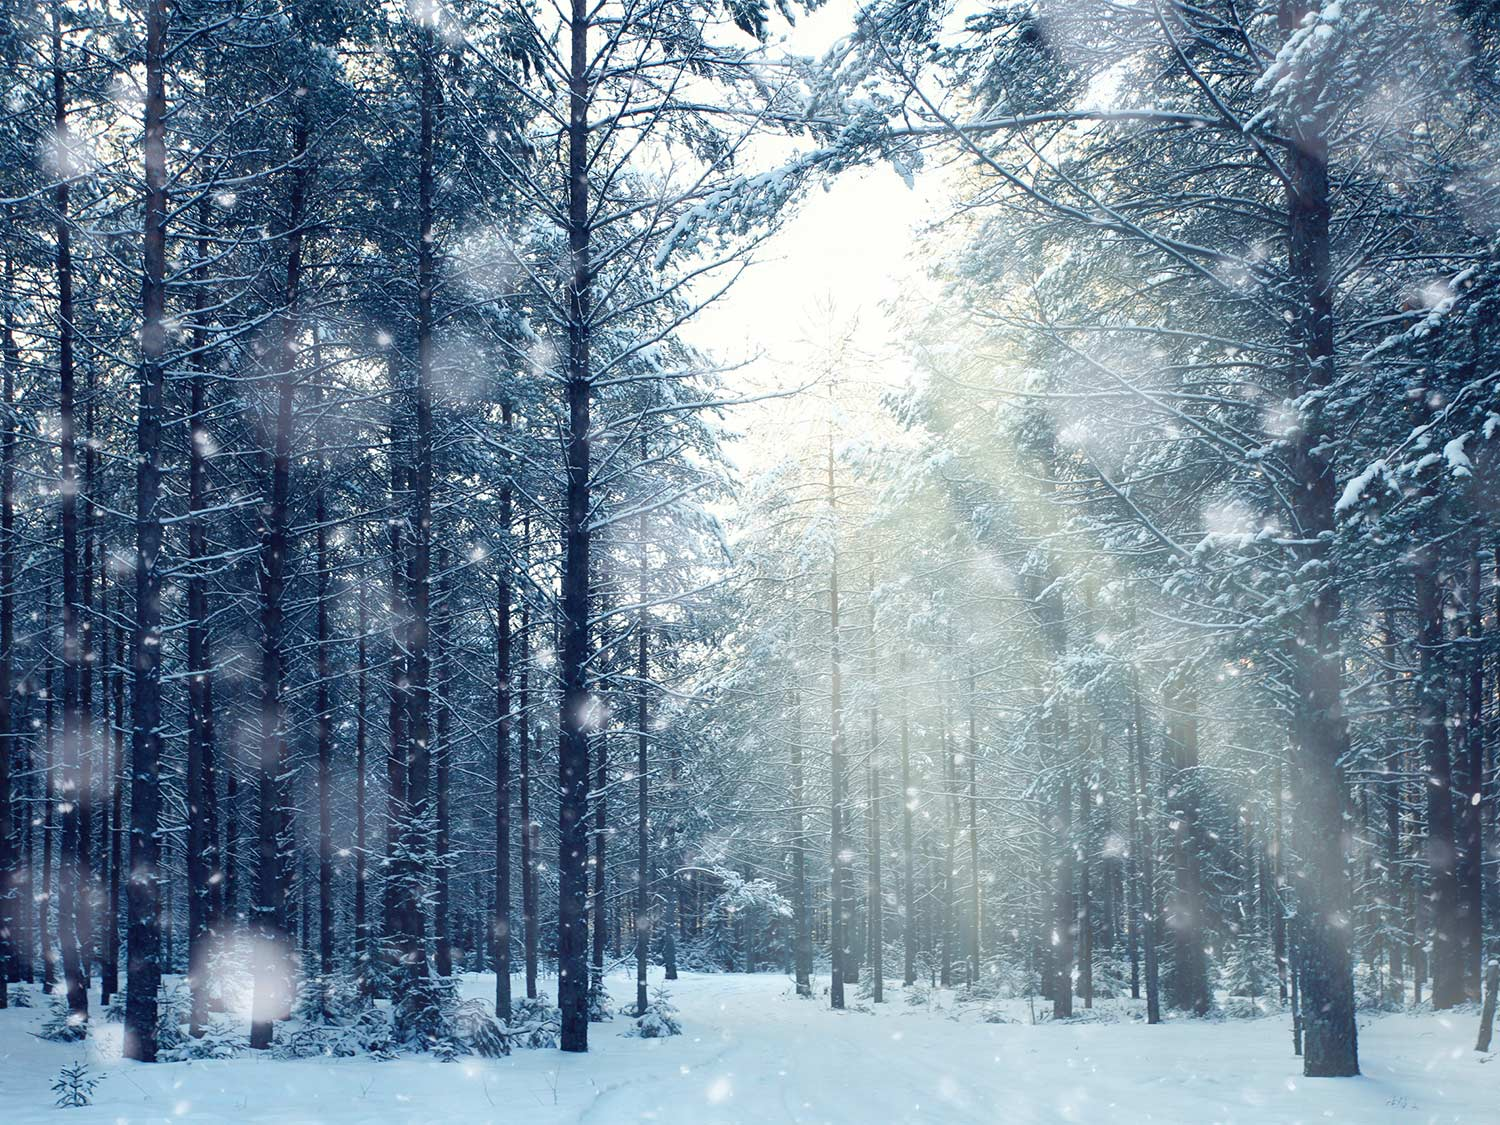 Snow covering the bed and trees of a forest.